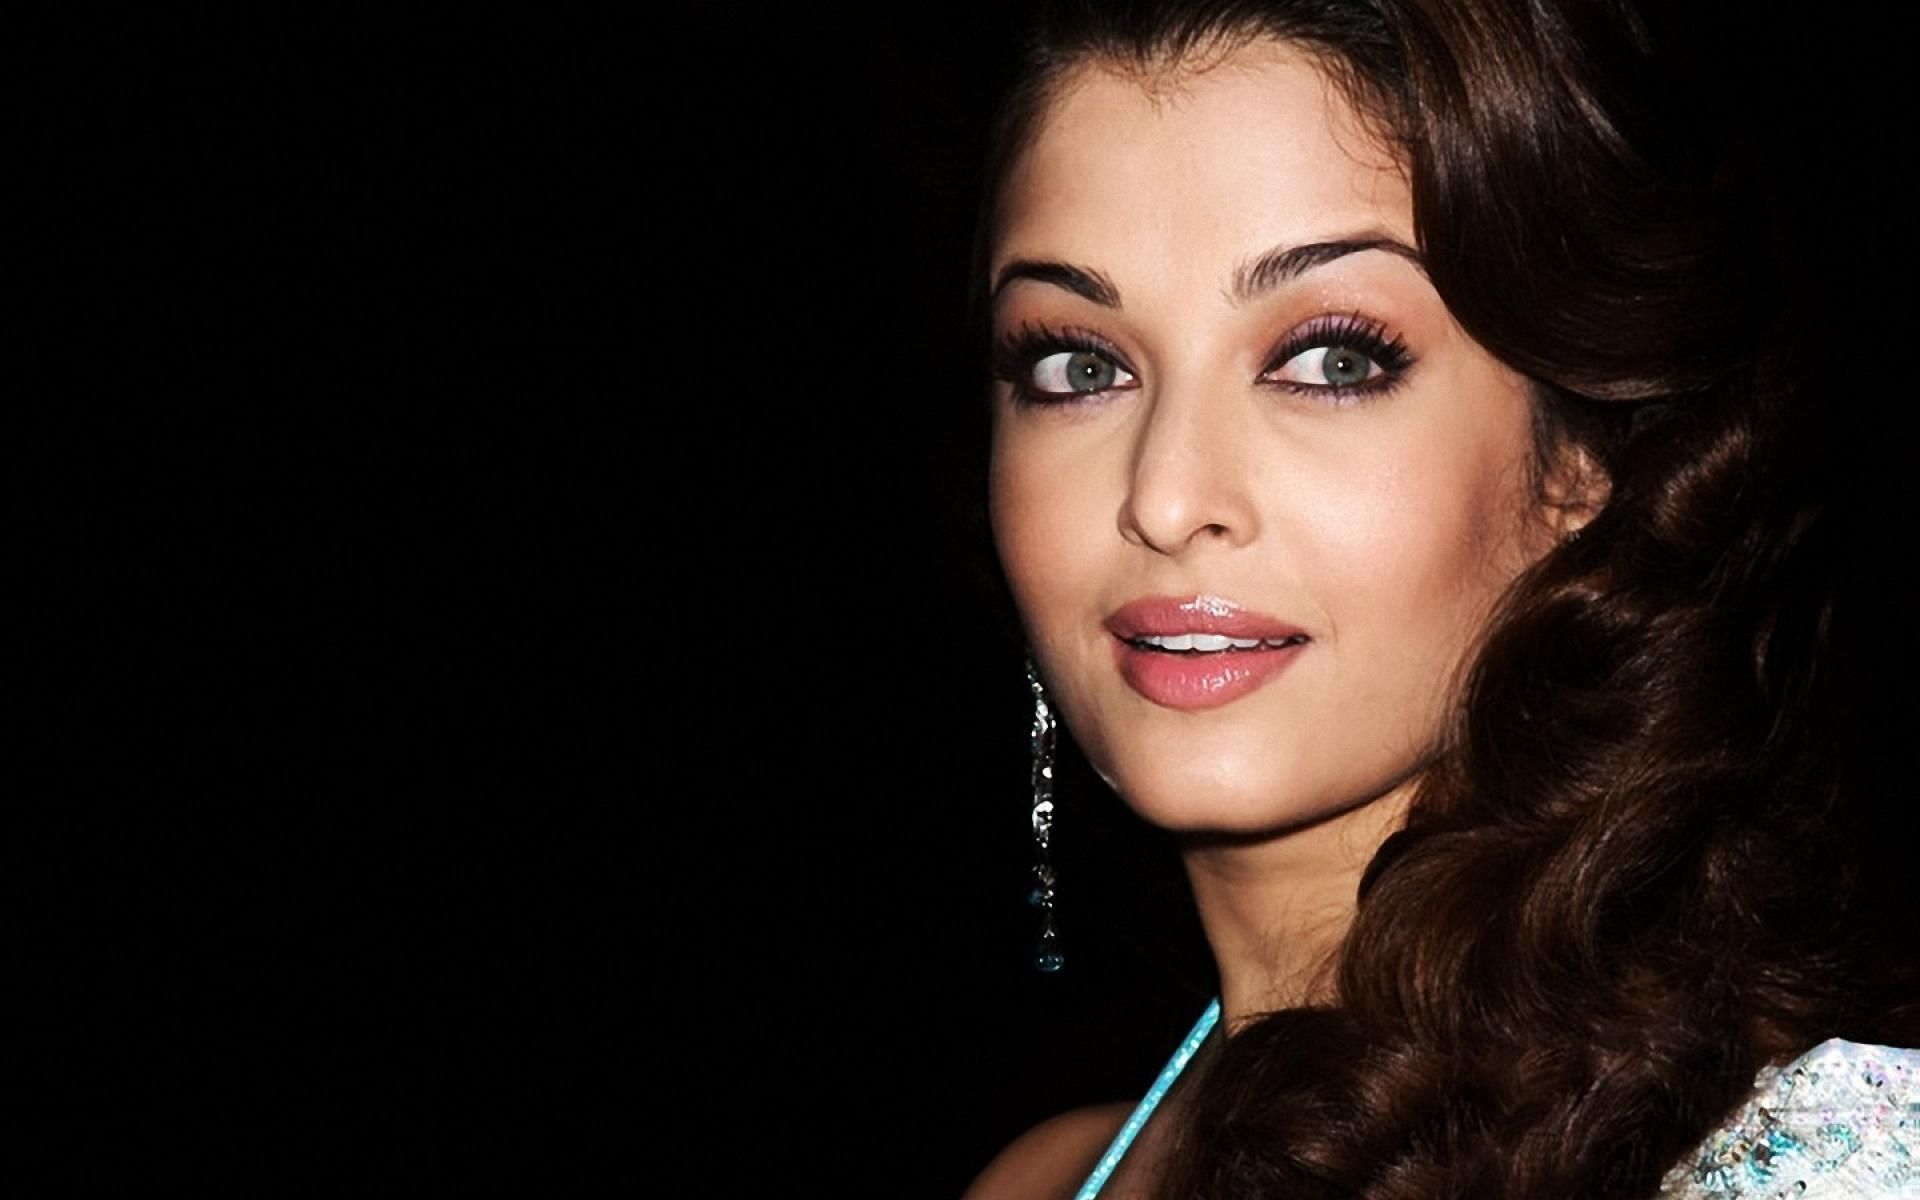 Aishwarya Rai Aishwarya Rai Wallpaper Aishwarya Rai Wallpaper Aishwarya Rai Beautiful Eyes